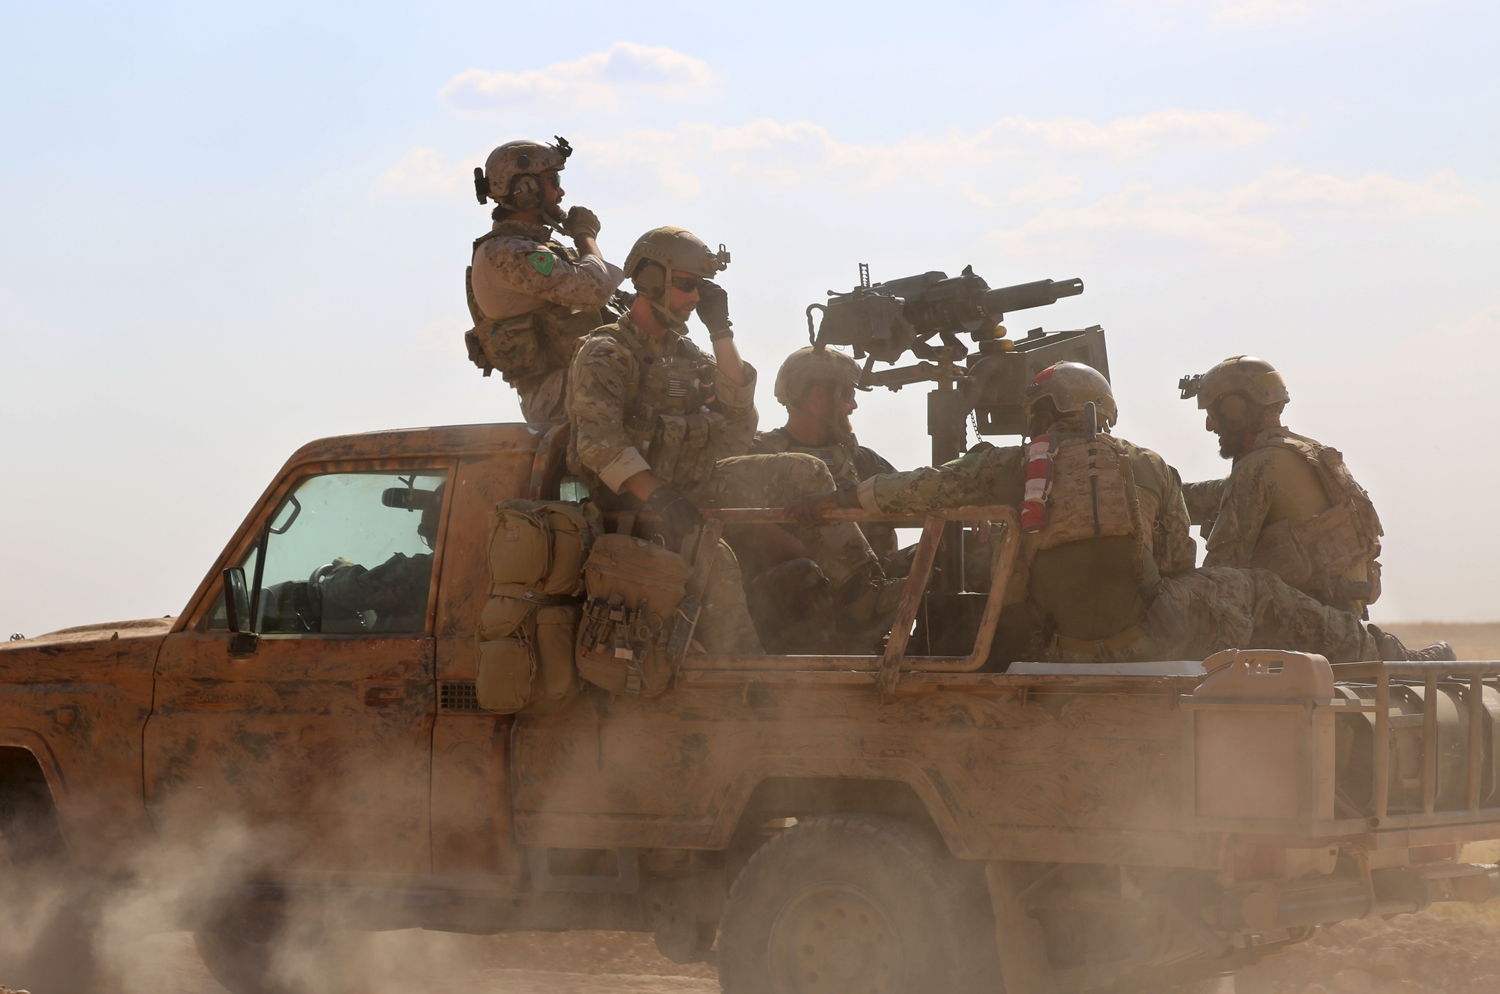 Armed men in uniform identified by Syrian Democratic forces as US special operations forces ride in the back of a pickup truck in the village of Fatisah in the northern Syrian province of Raqa on May 25, 2016.